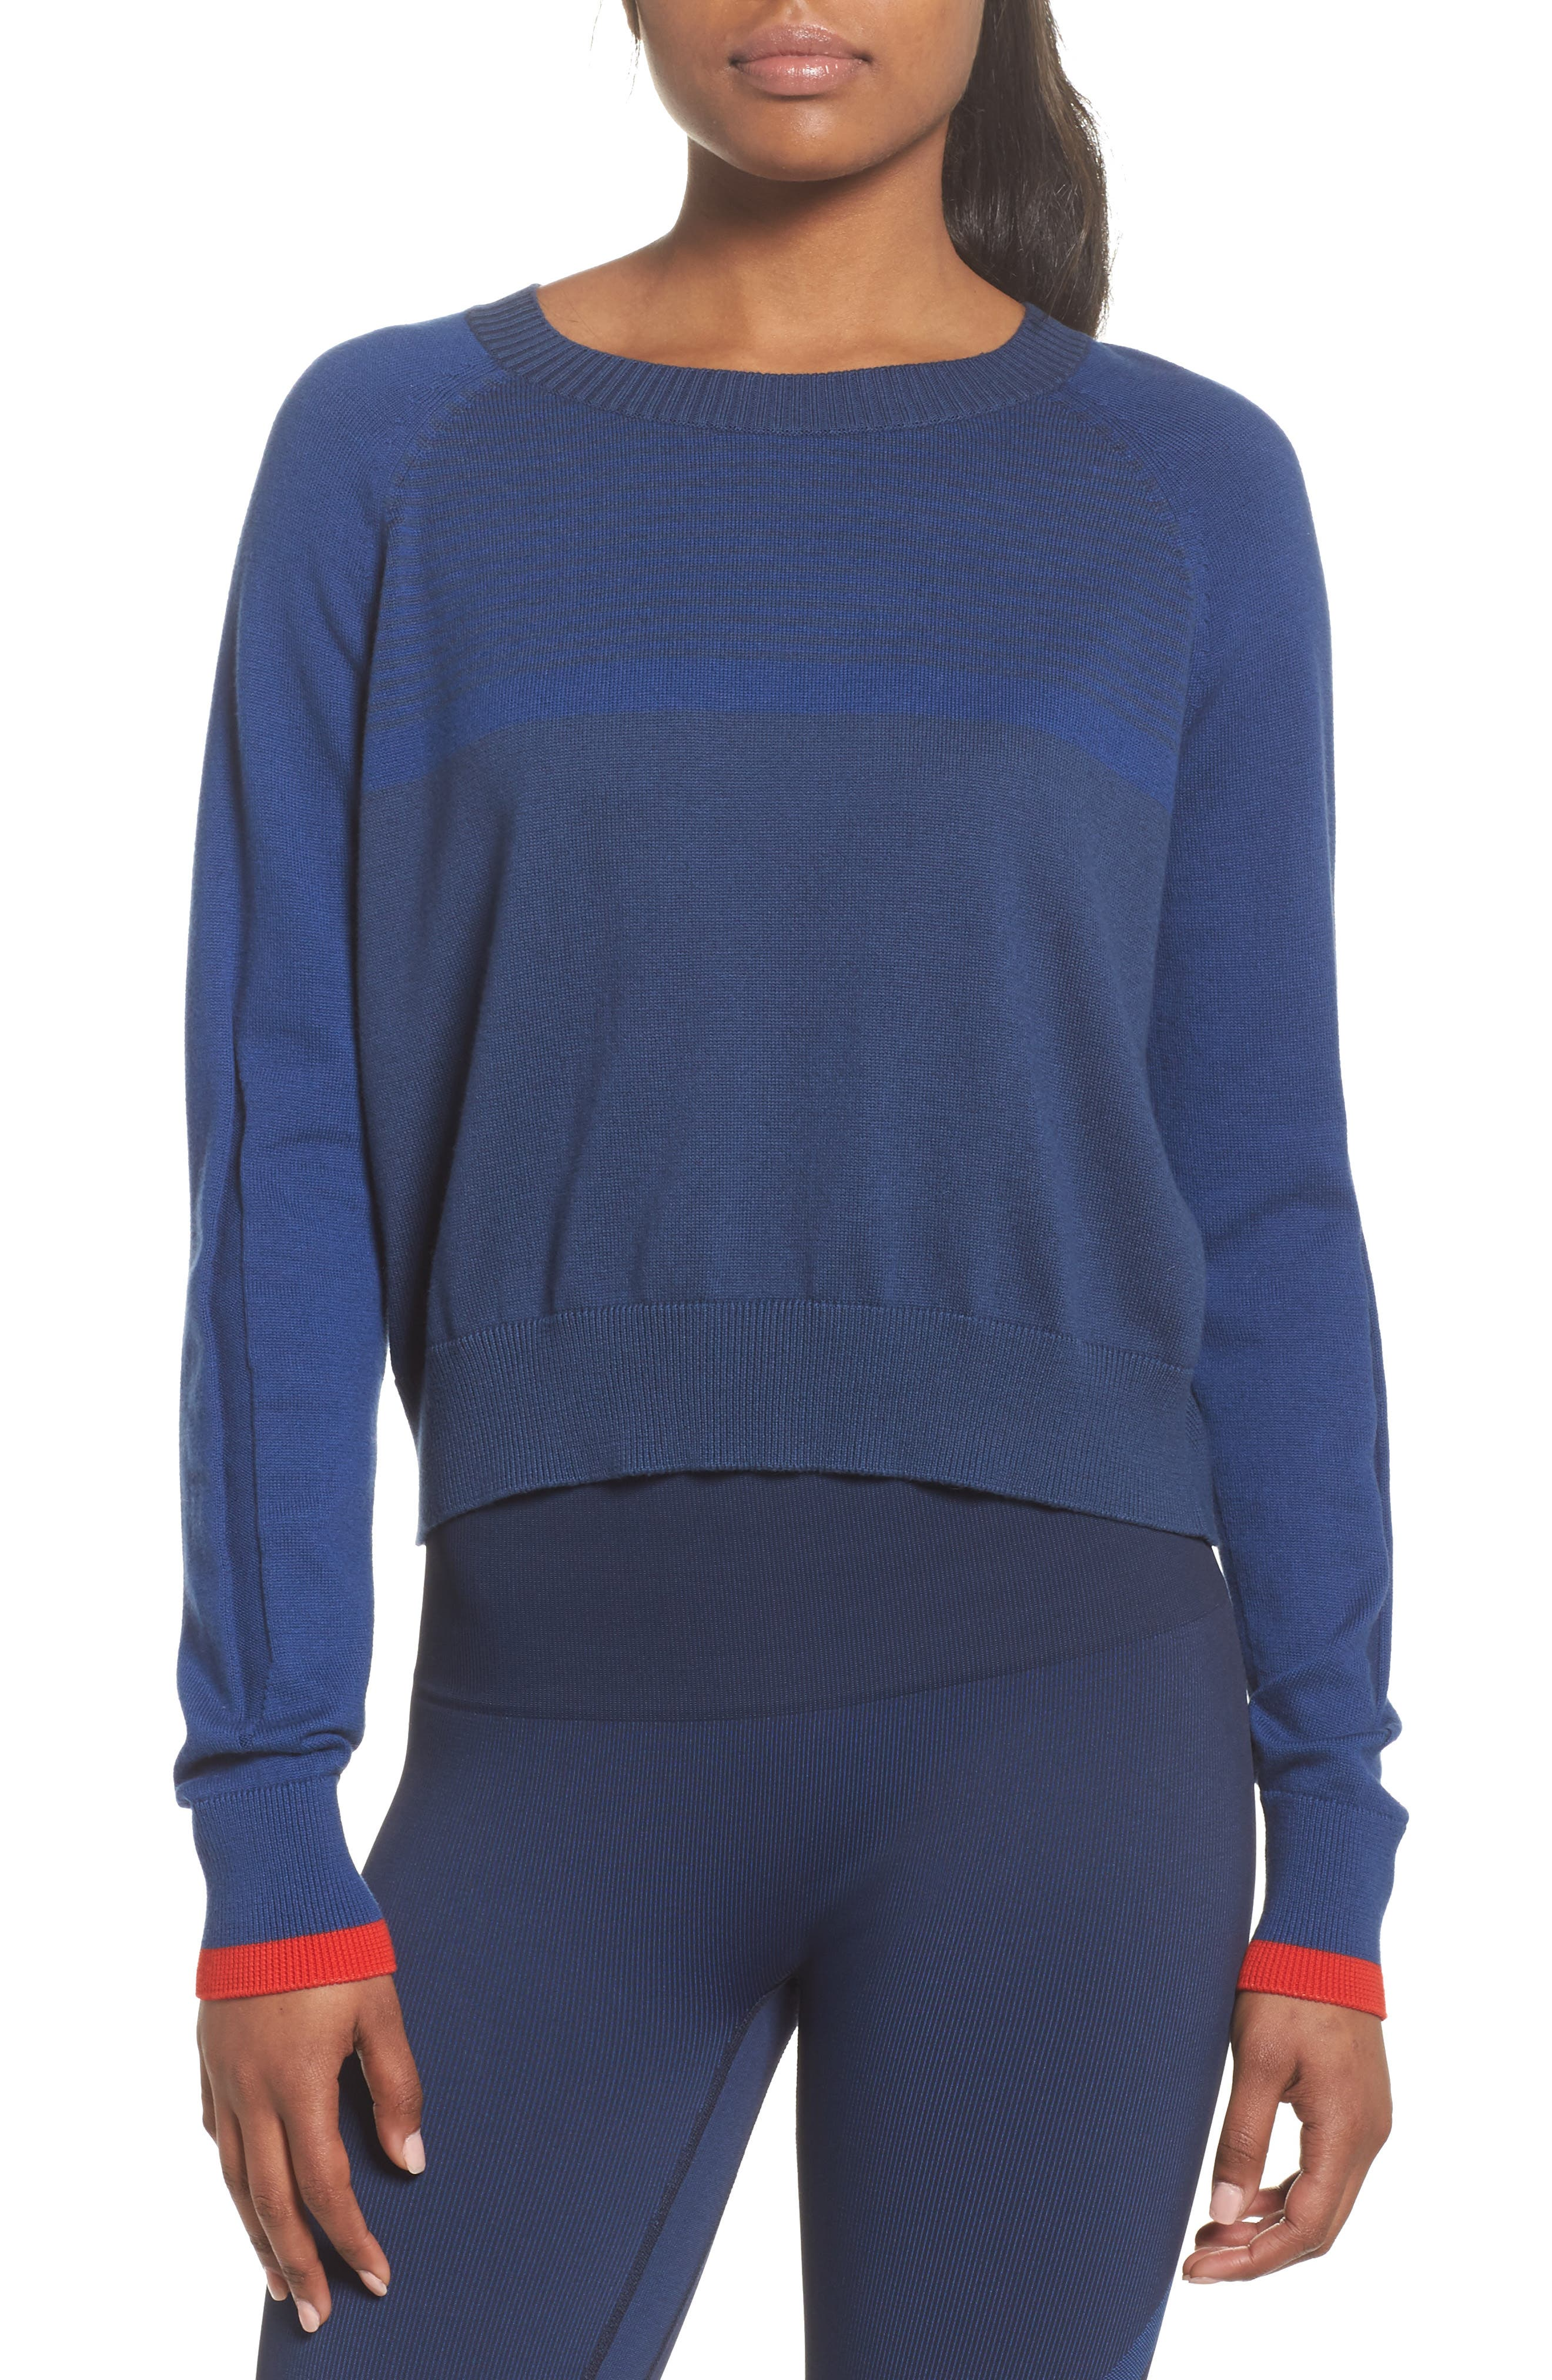 Prism Cropped Sweater,                         Main,                         color, Blue